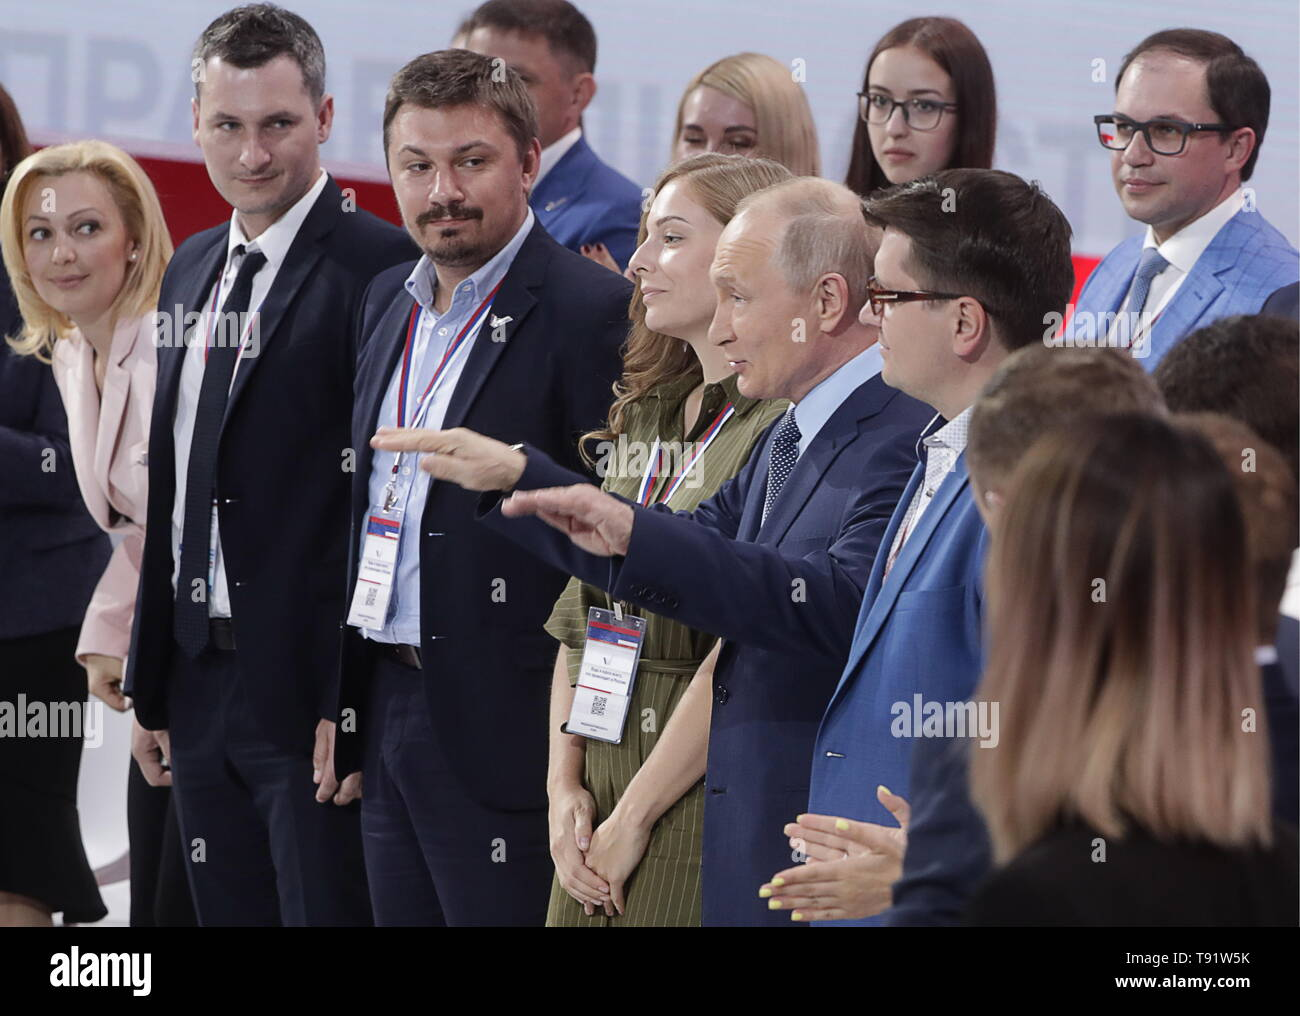 Sochi, Russia. 16th May, 2019. SOCHI, RUSSIA - MAY 16, 2019: Russia's President Vladimir Putin (C) arrives at the plenary meeting at the Independent Local and Regional Media Forum held by the All-Russian People's Front. Picutred in this image is also Deputy State Duma Chairperson Olga Timofeyeva (L). Mikhail Metzel/TASS Credit: ITAR-TASS News Agency/Alamy Live News - Stock Image